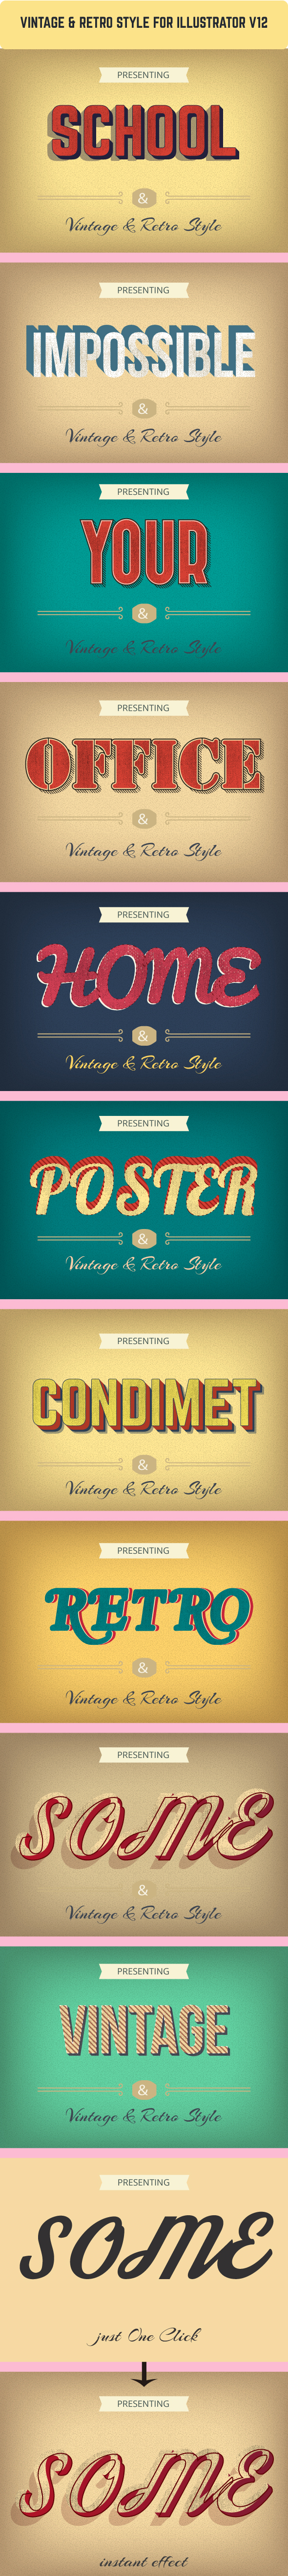 Vintage & Retro Graphic Styles for Illustrator - Styles Illustrator